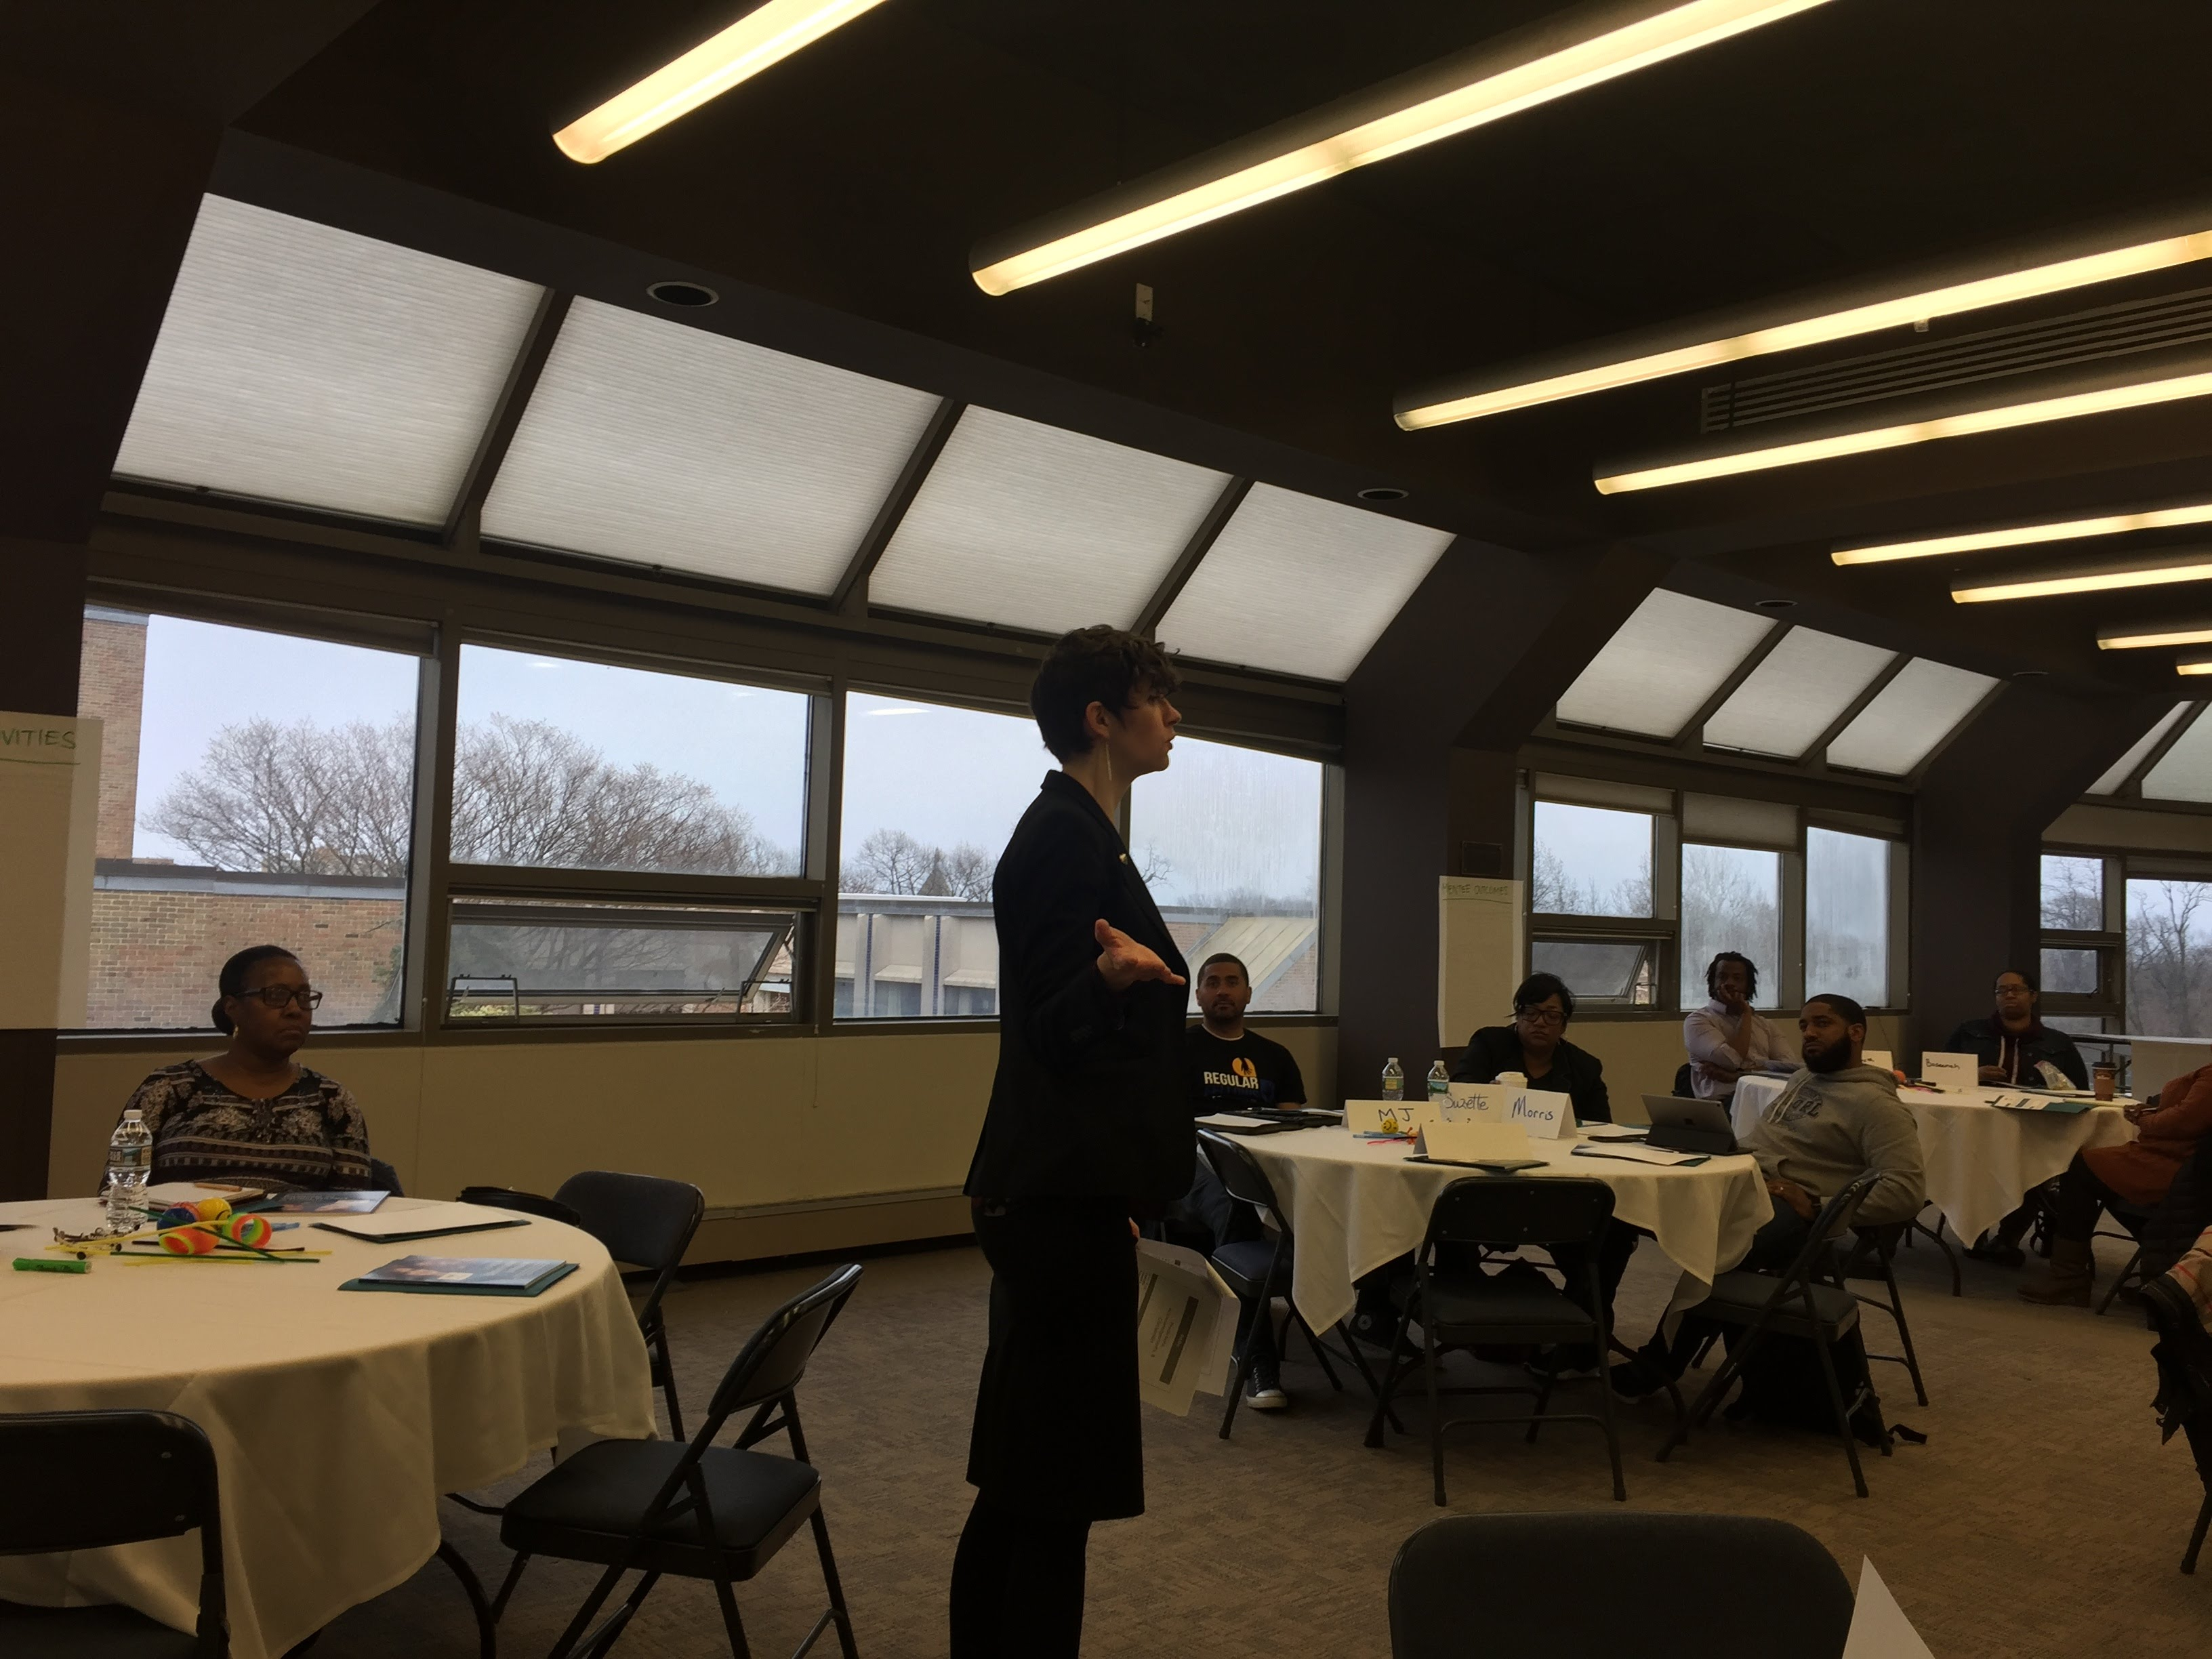 April 11, 2018: Mentor Independence Region hosts a Mentoring Training Session at LaSalle University